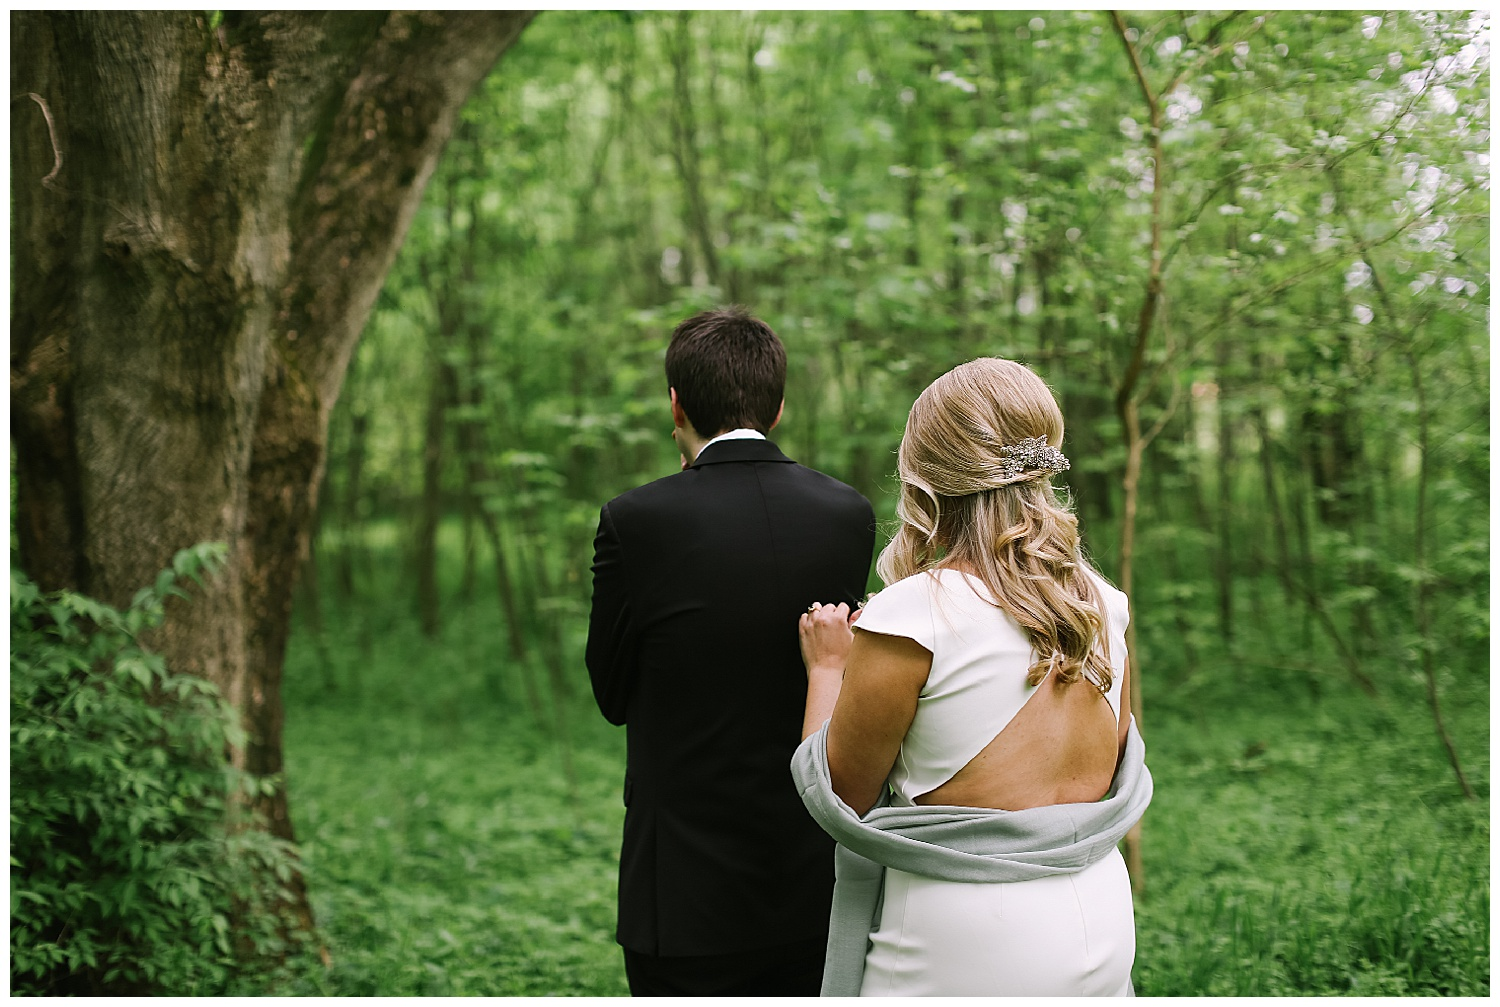 trent.and.kendra.photography.elopement.intimate.wedding-33.jpg